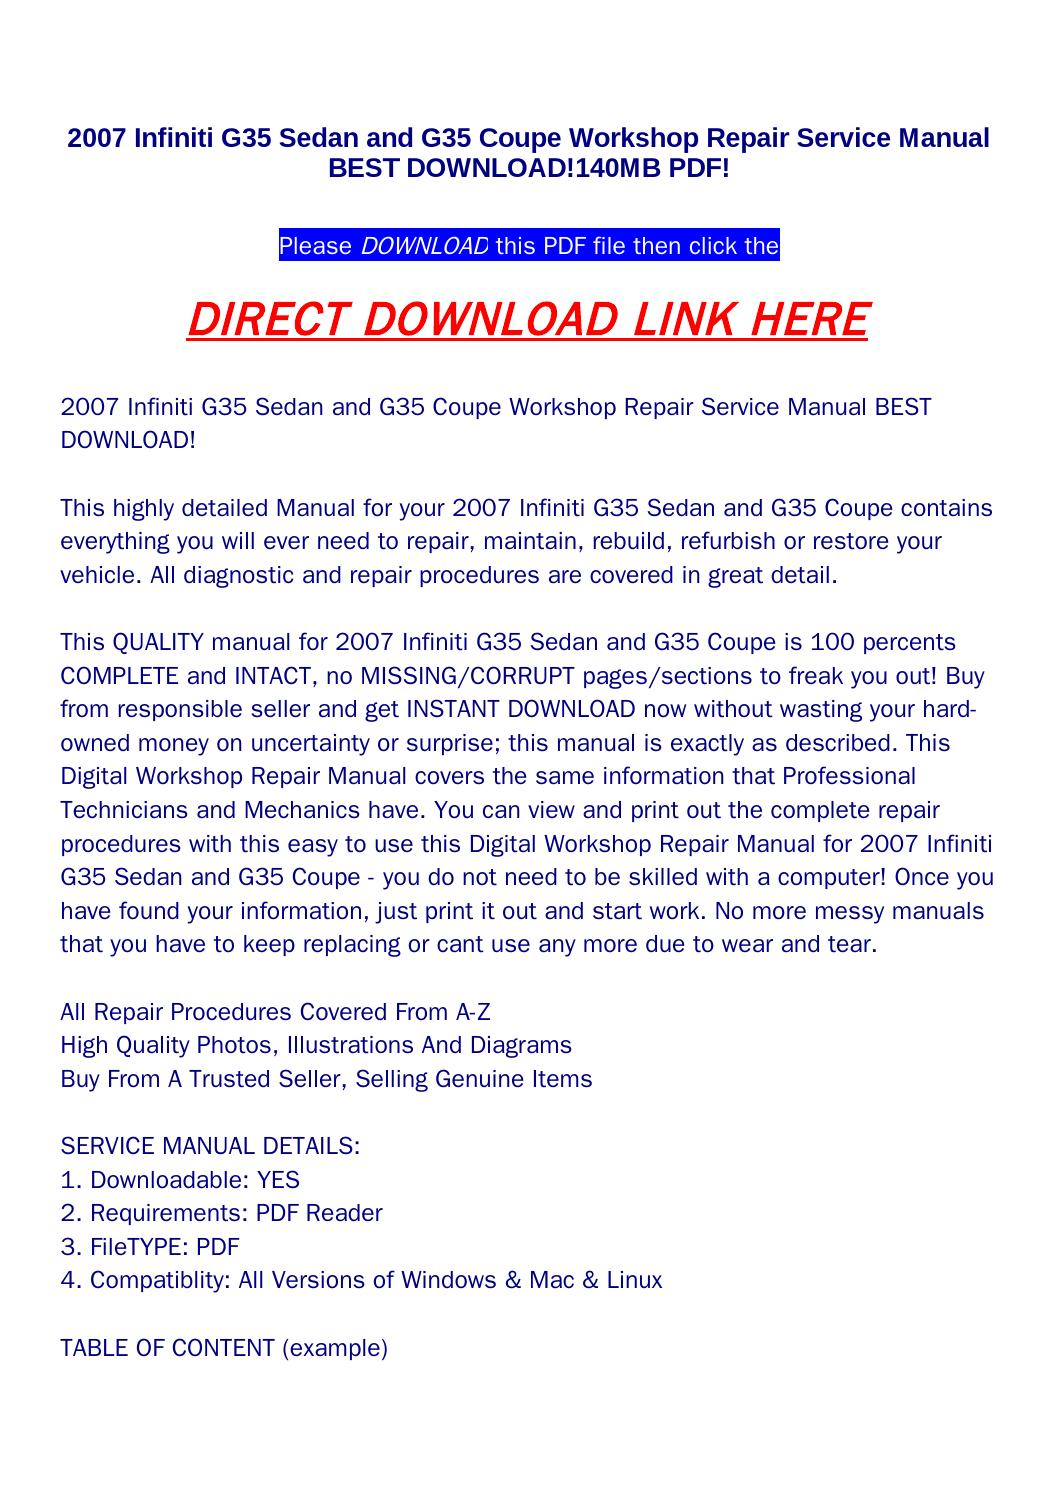 2007 infiniti g35 sedan and g35 coupe workshop repair service manual 2007 infiniti g35 sedan and g35 coupe workshop repair service manual best download140mb pdf by returnqqv issuu asfbconference2016 Images